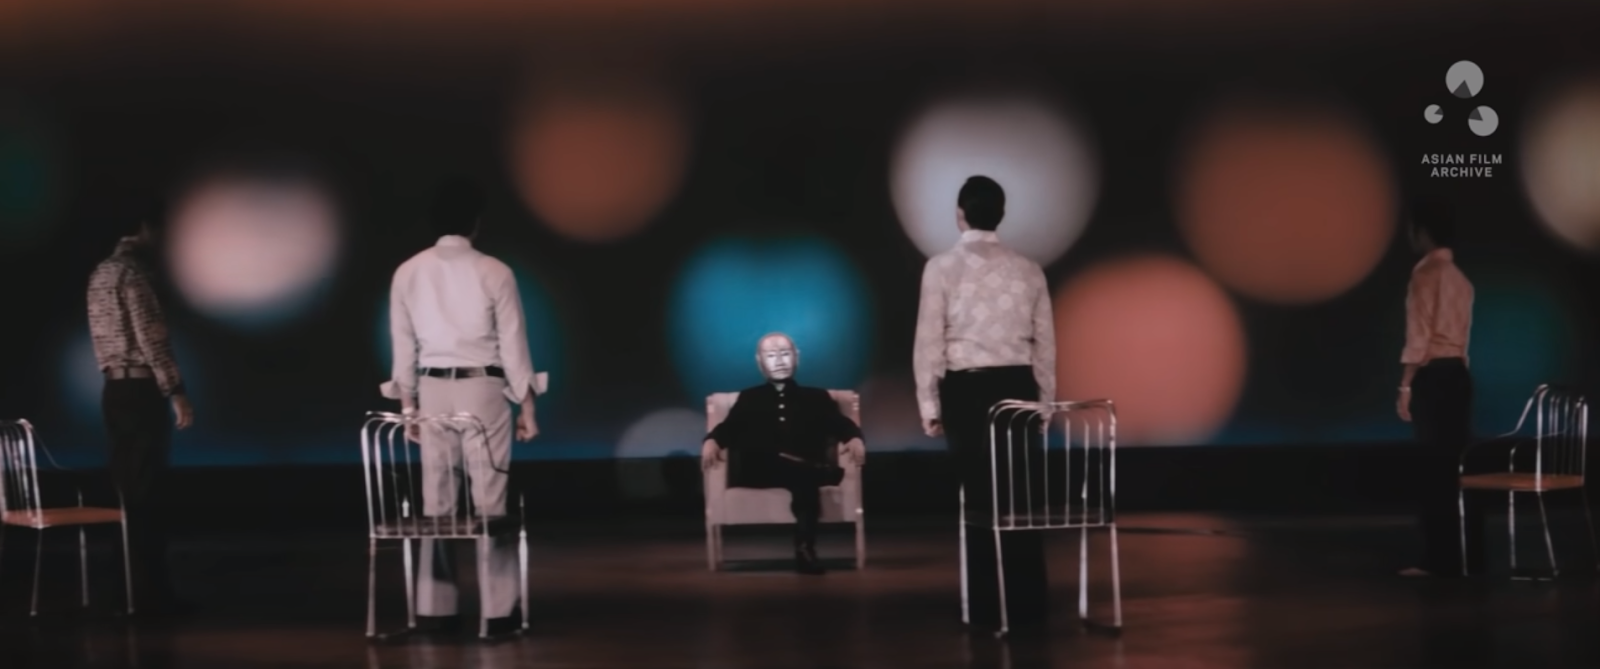 Seated in a chair, the main antagonist, wearing an iron mask, is scanning his men. The background is black with colored spots